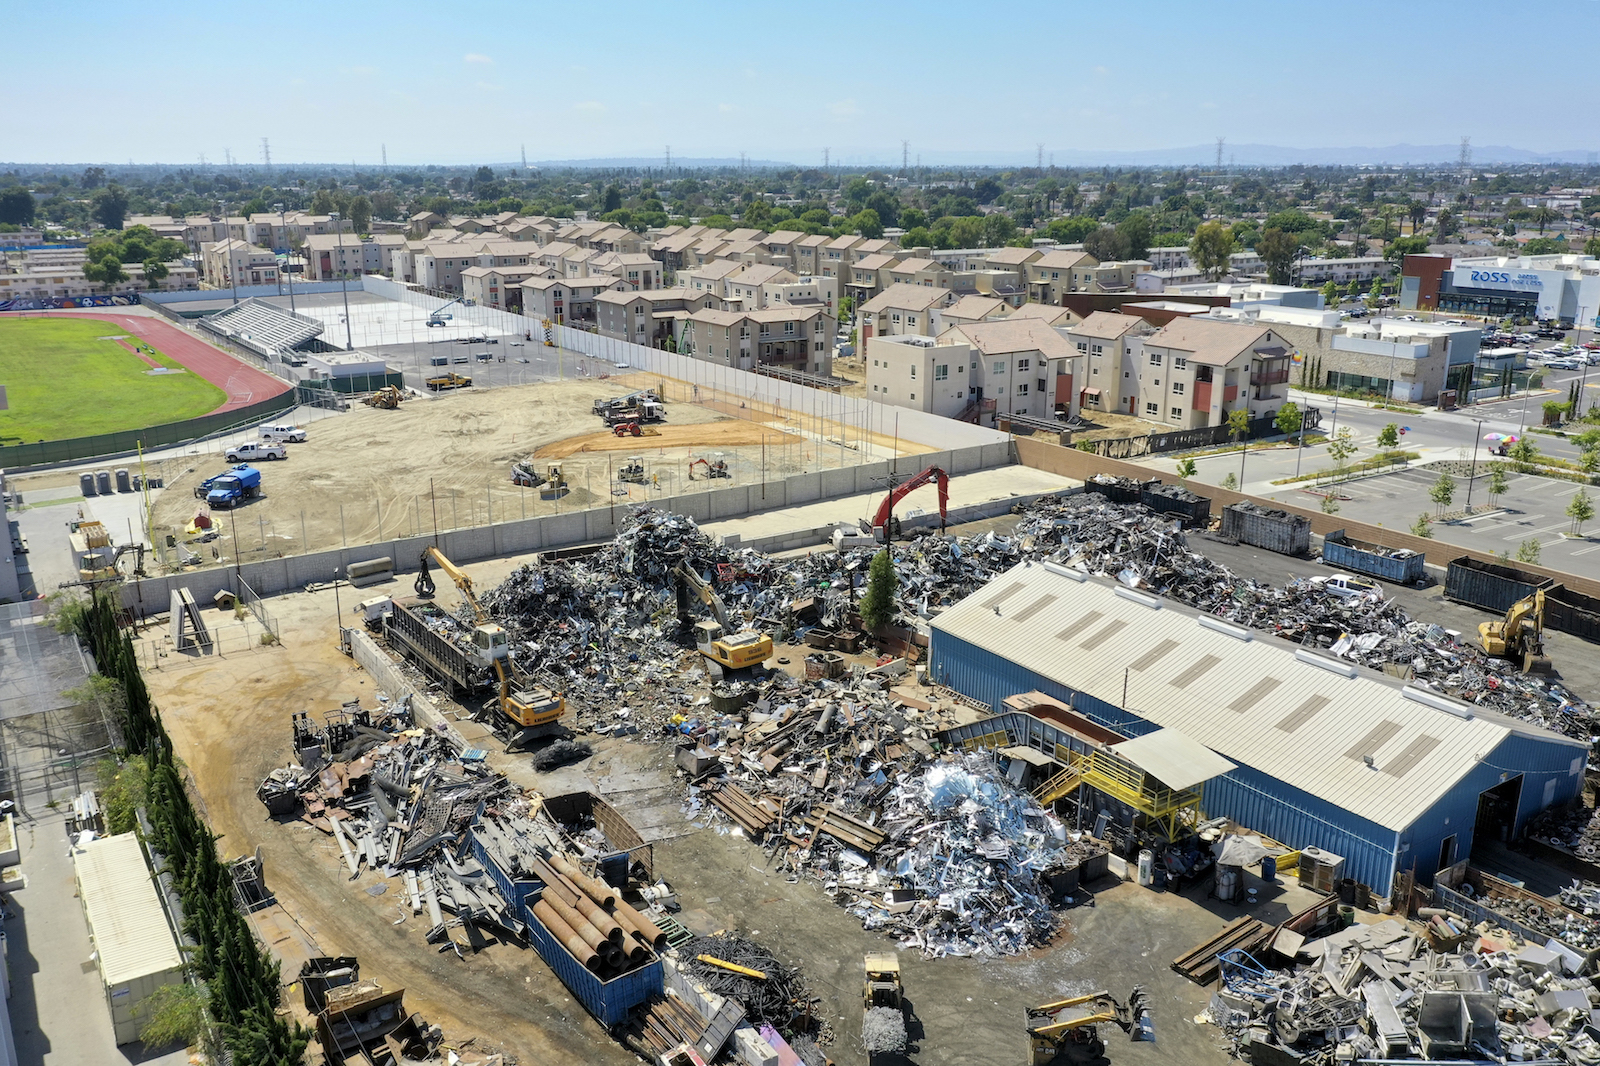 an aerial view of a large scrapyard piled high with metal pieces next to a sunny road and green sports field